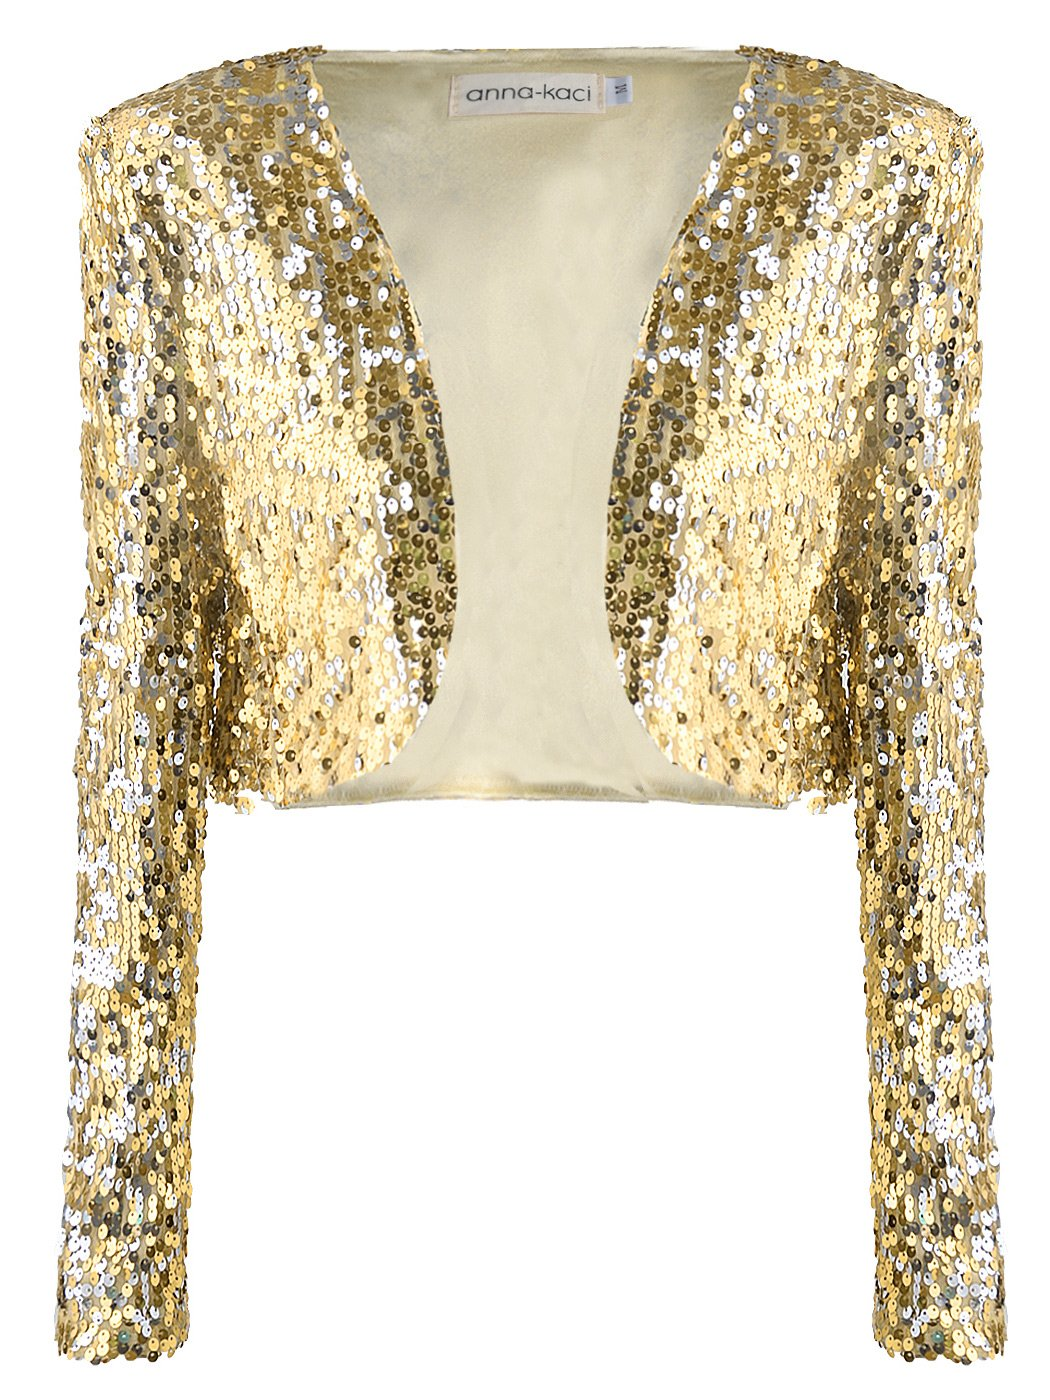 Anna-Kaci Womens Shiny Sequin Long Sleeve Glitter Cropped Blazer Bolero Shrug, Gold, Medium